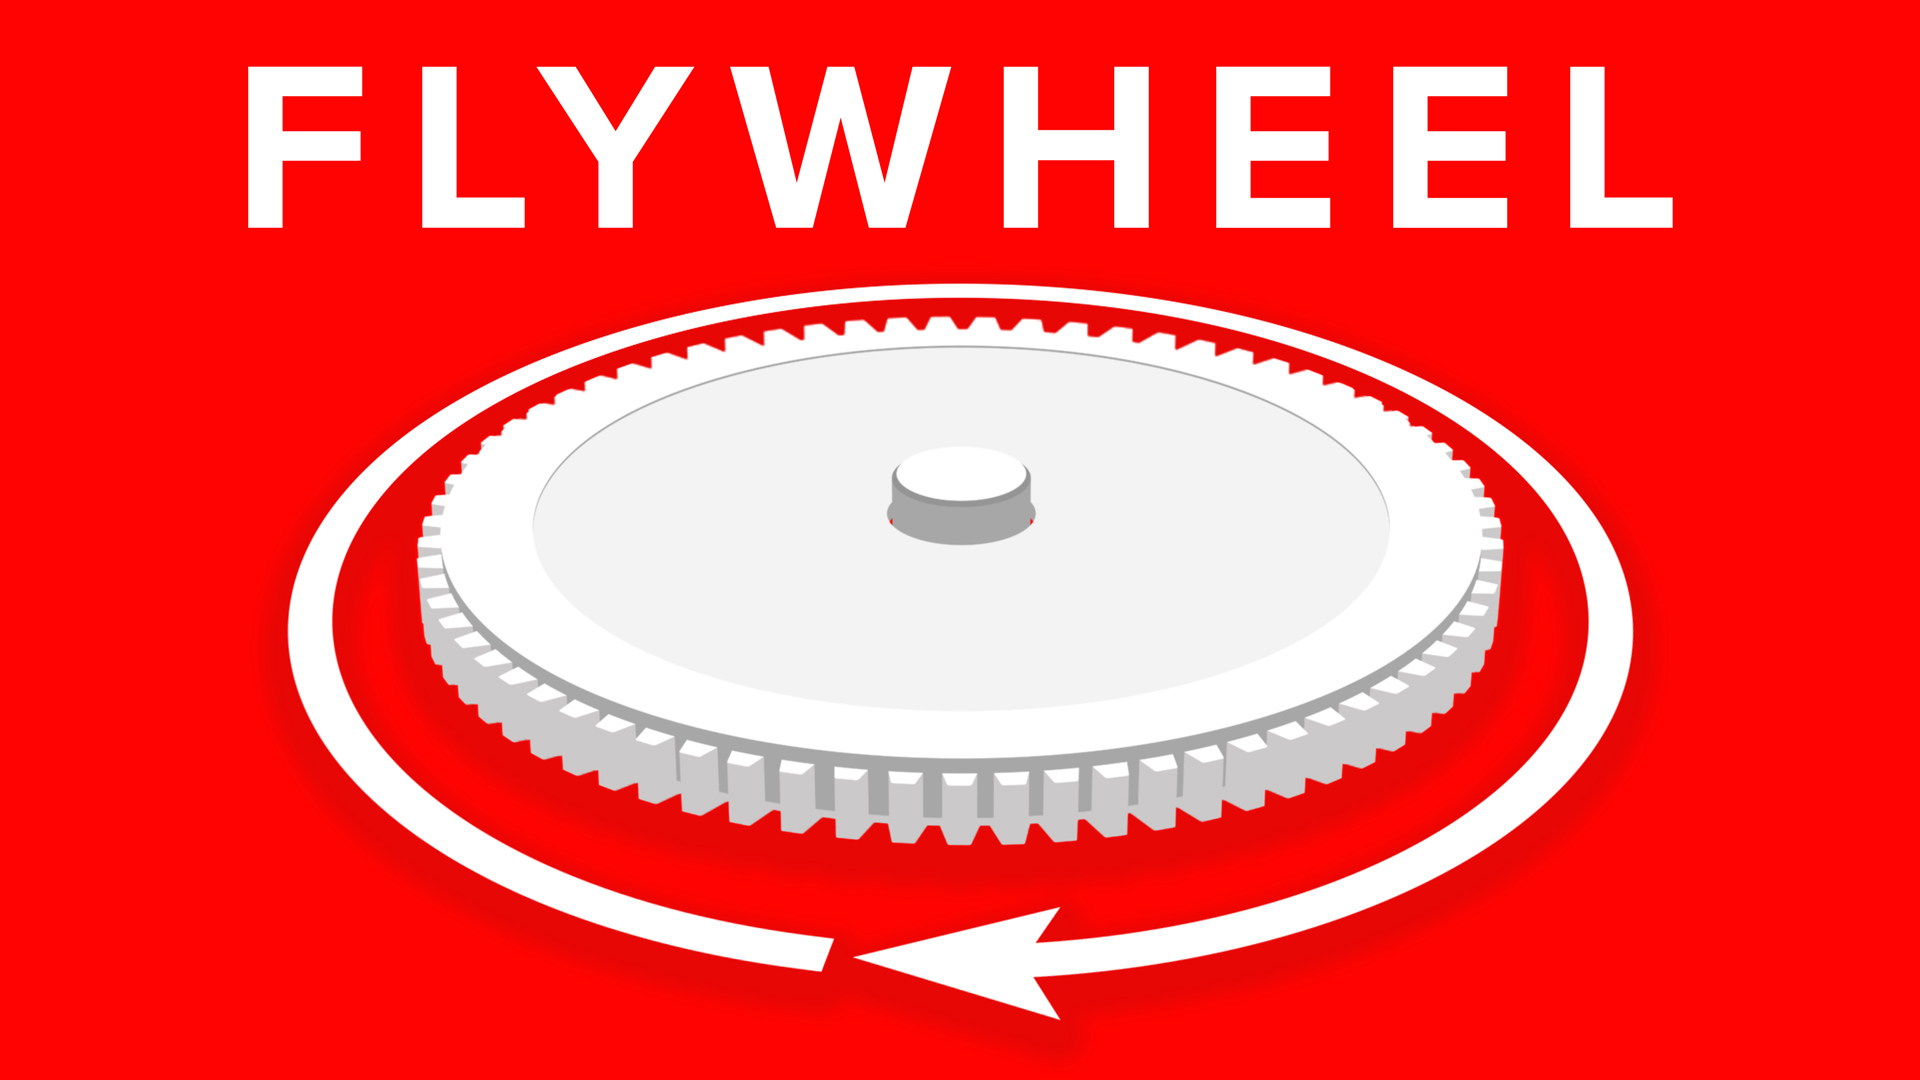 The Flywheel Concept From Good To Great Infographic 3D